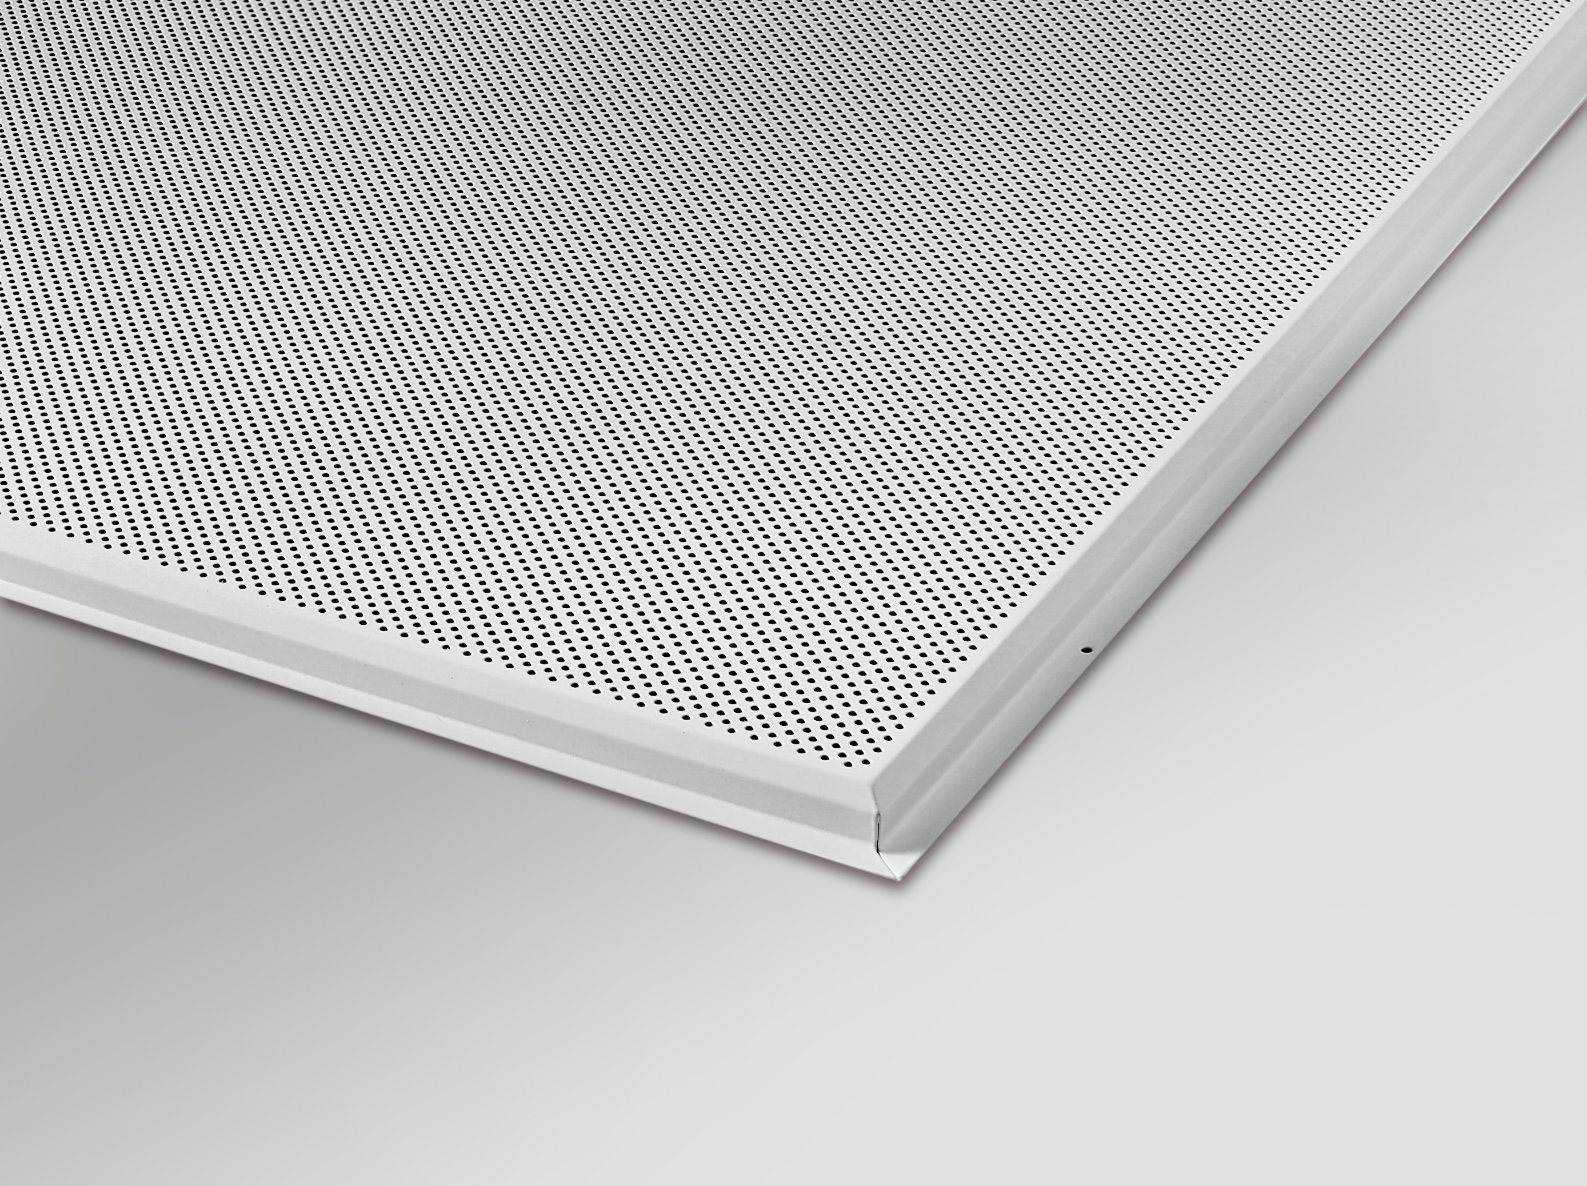 China metal lay in aluminum ceiling tile with iso 9001 photos metal lay in aluminum ceiling tile with iso 9001 dailygadgetfo Choice Image